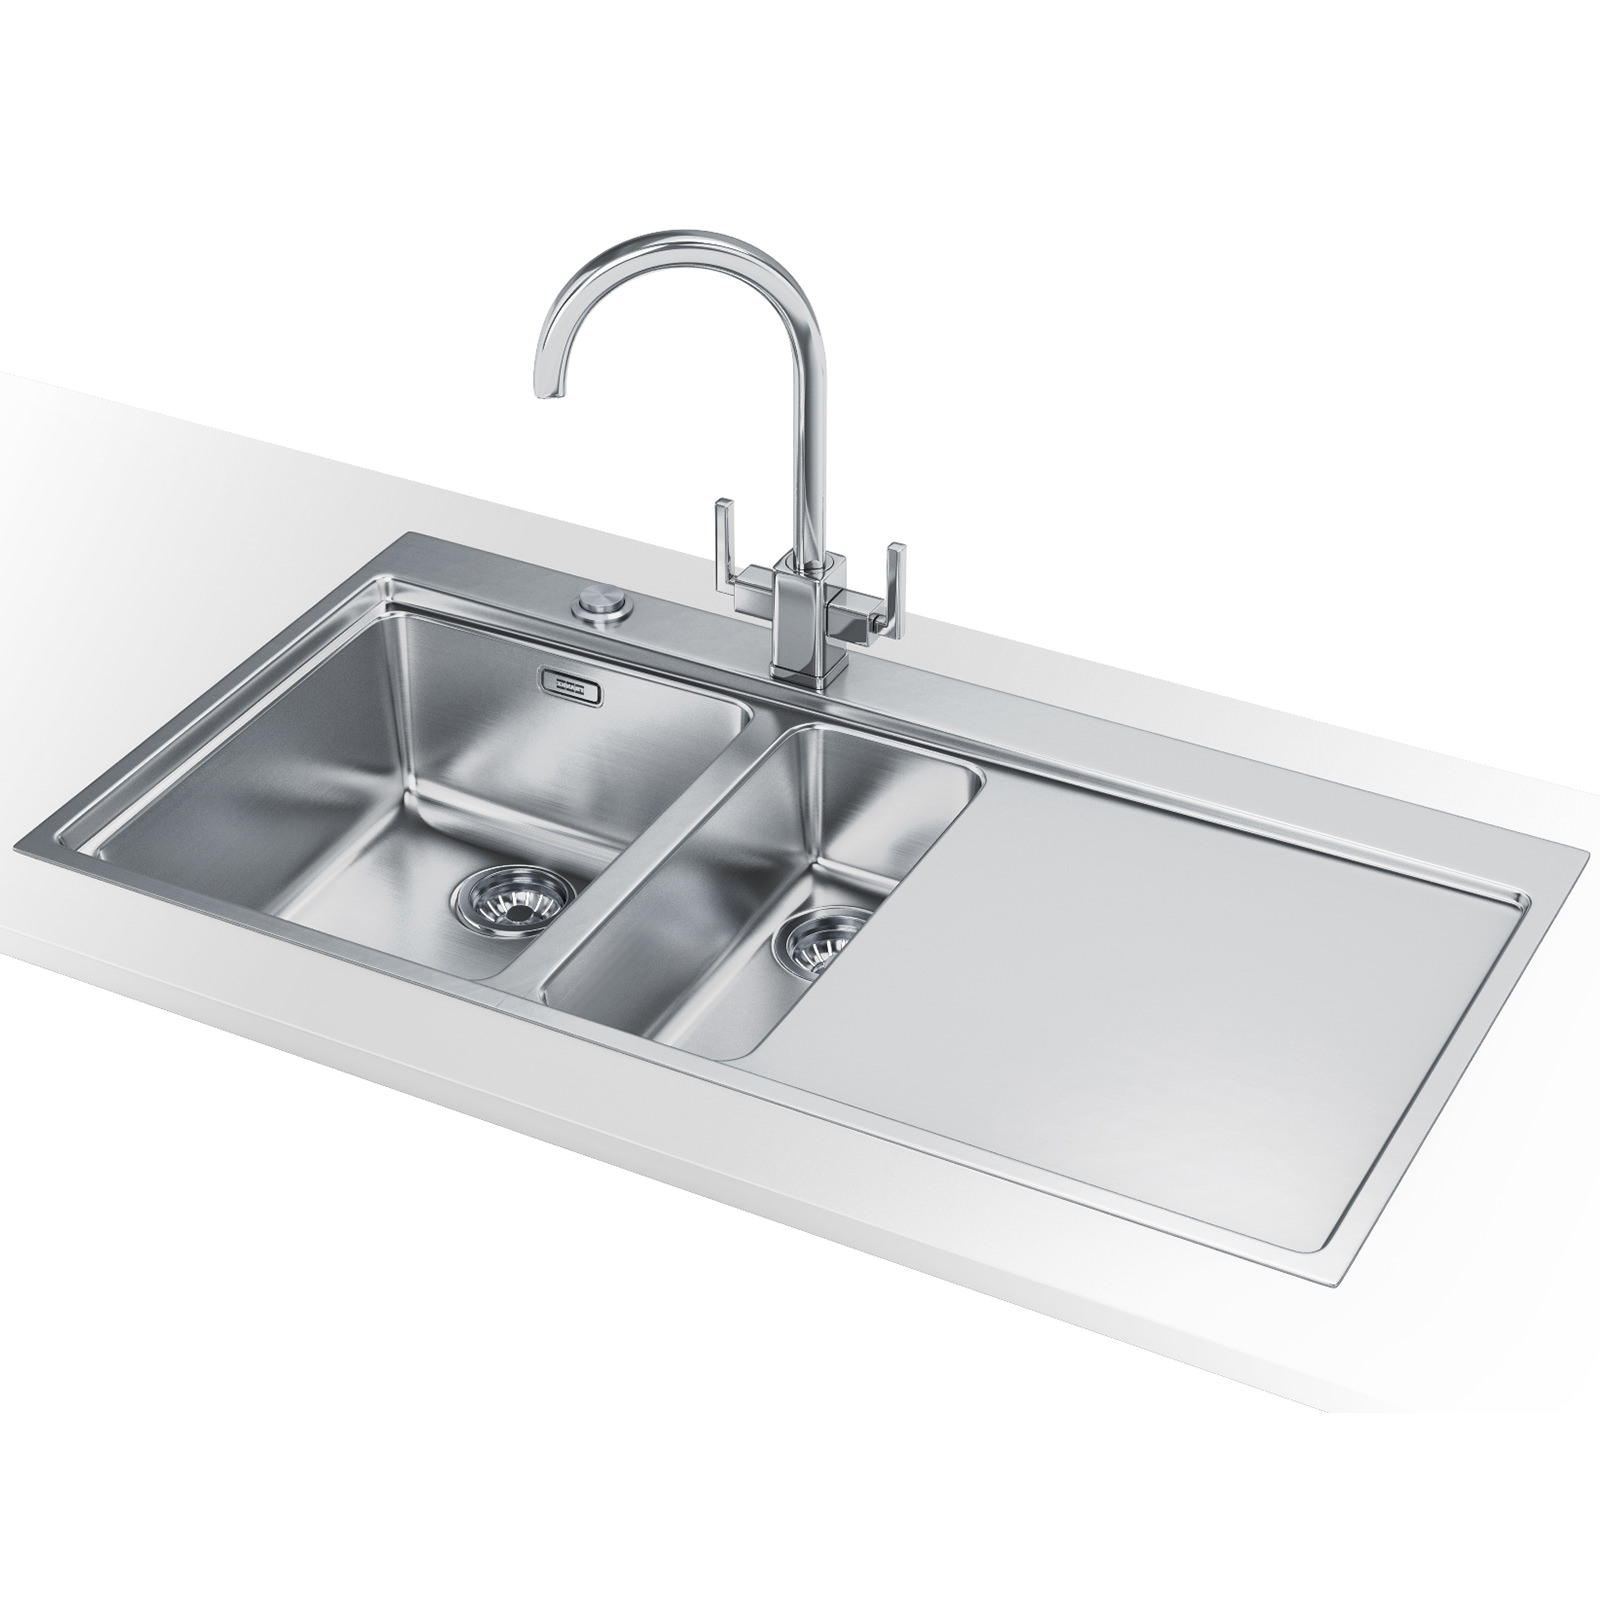 Franke Mythos Sink Stainless Steel : Franke Mythos MMX 251 - Stainless Steel Right Drainer Sink And Tap